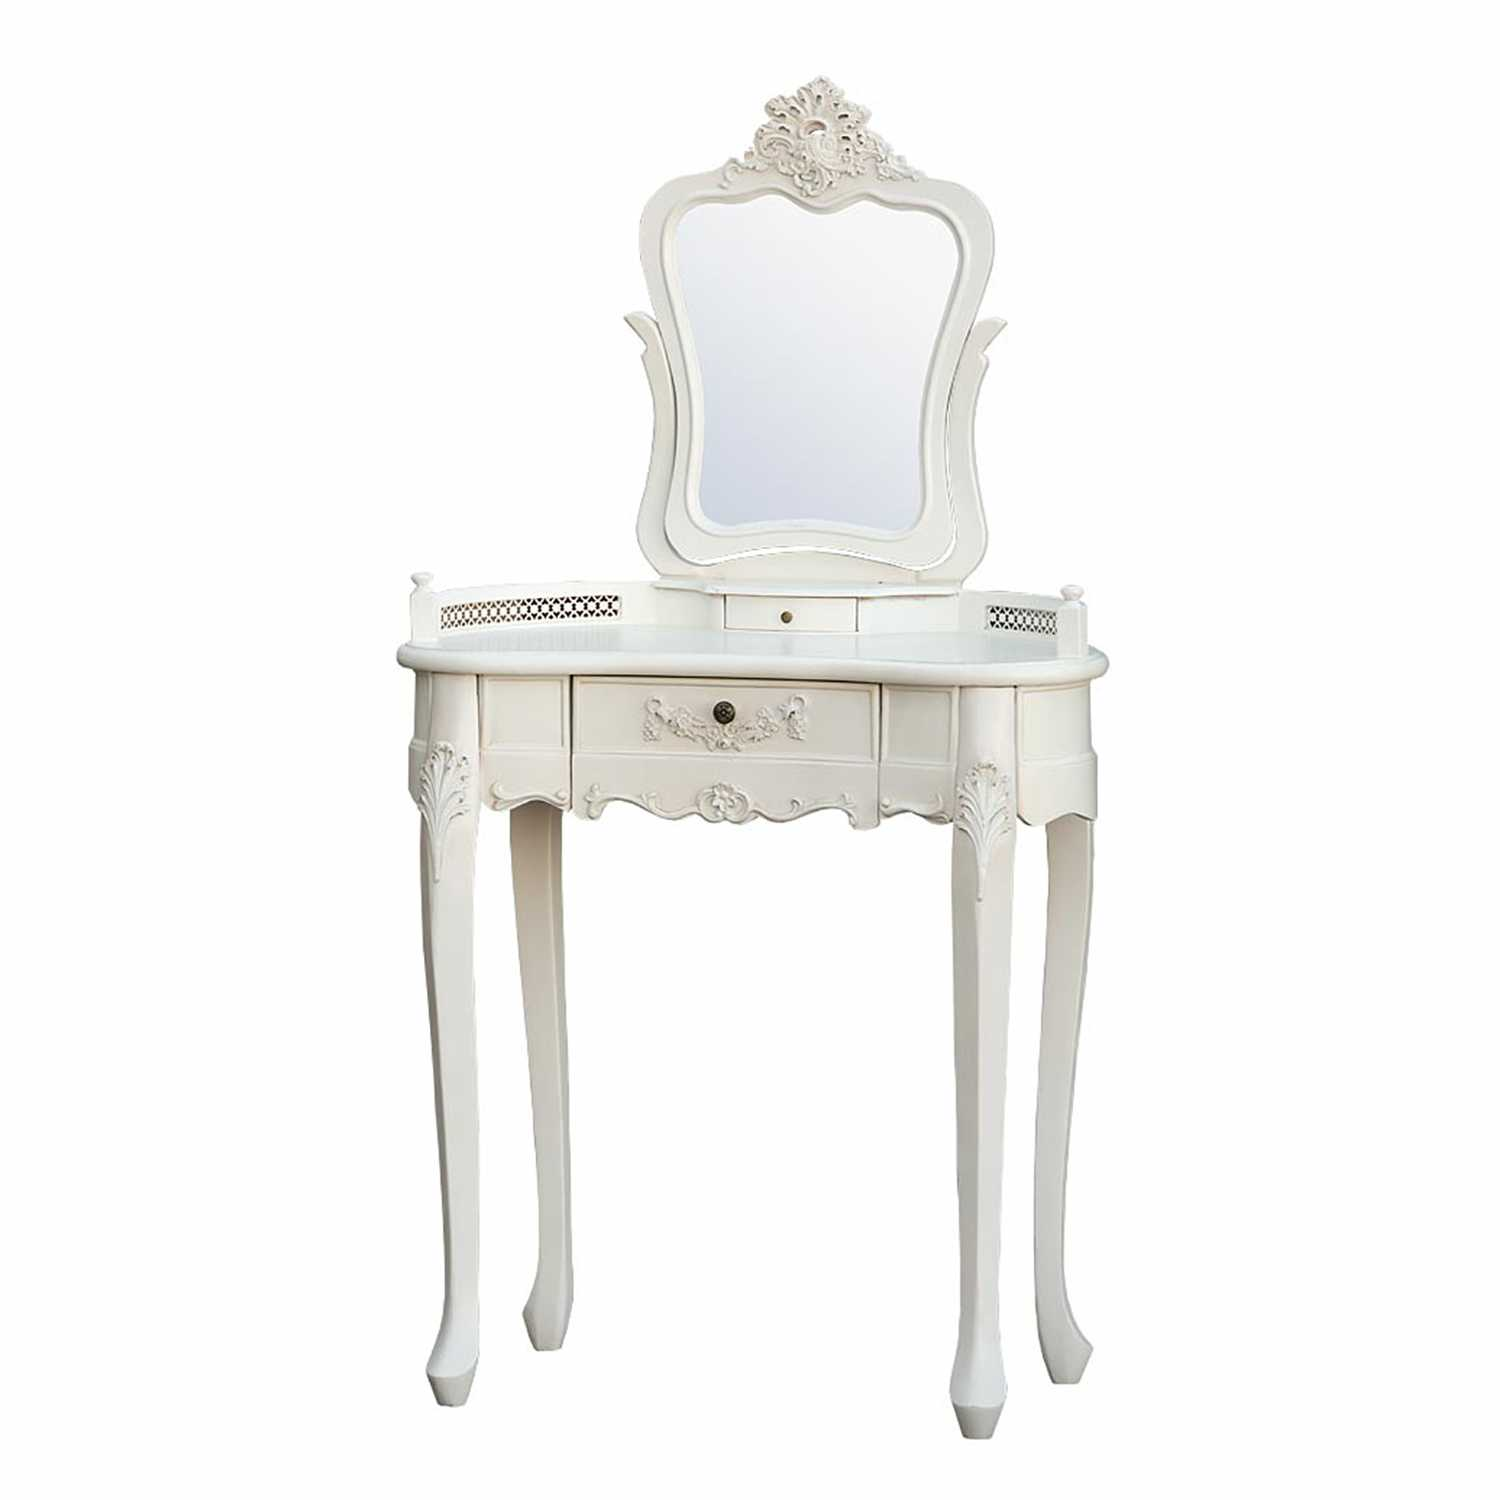 Antique White Small Dressing Table With Mirror